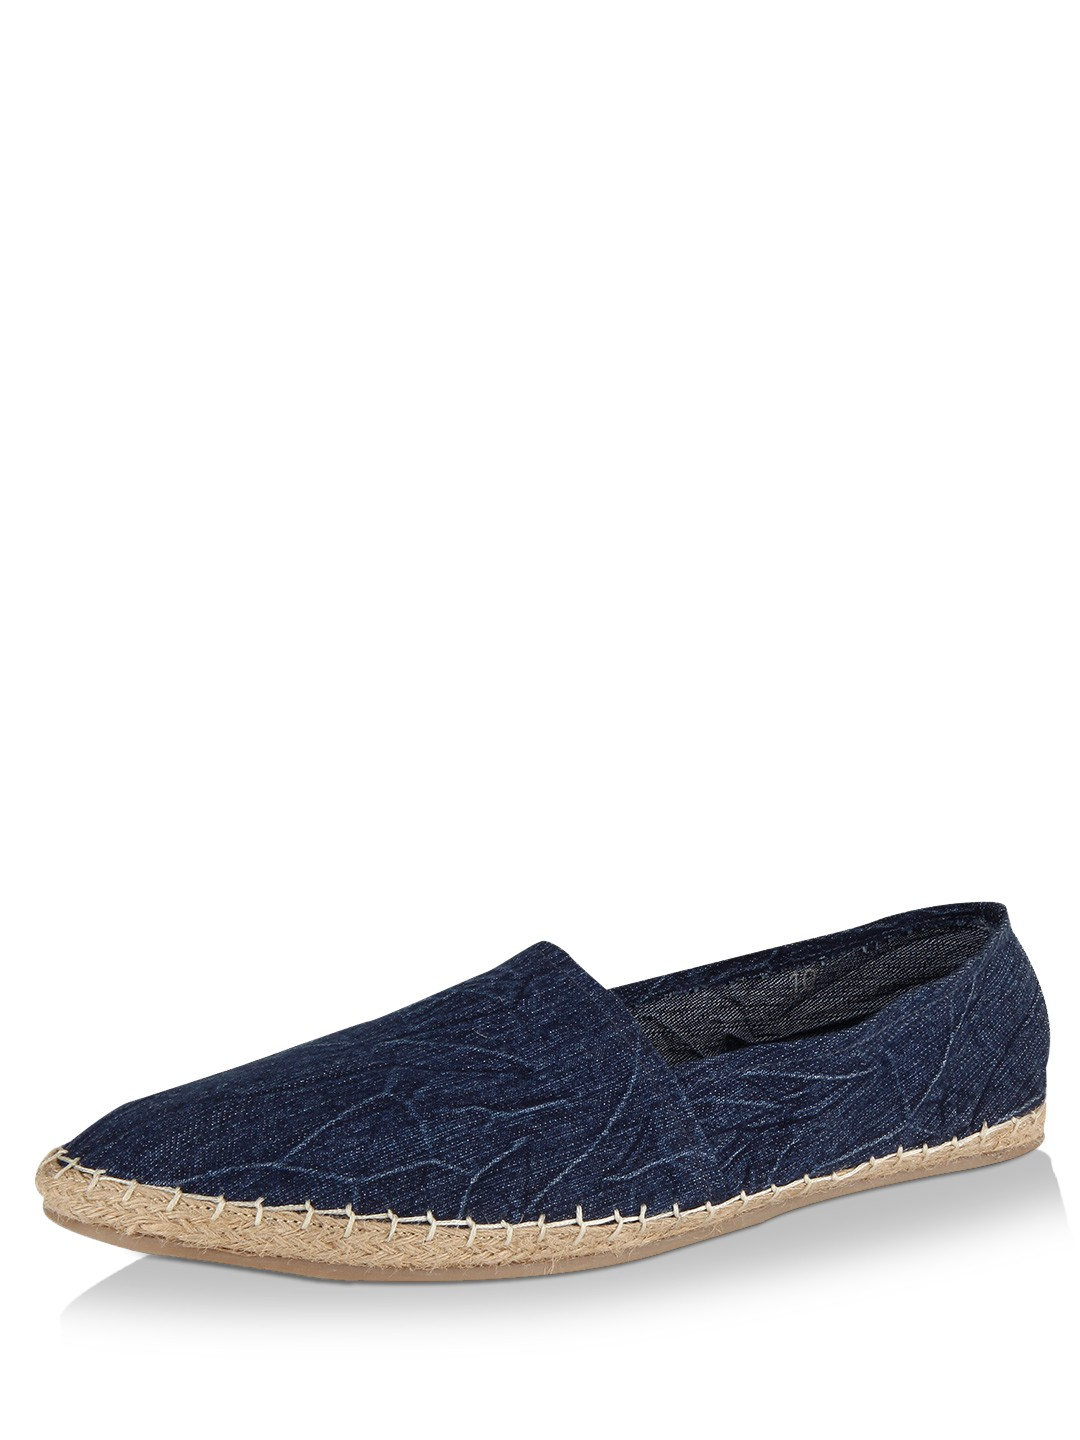 How To Repair Espadrille Shoes